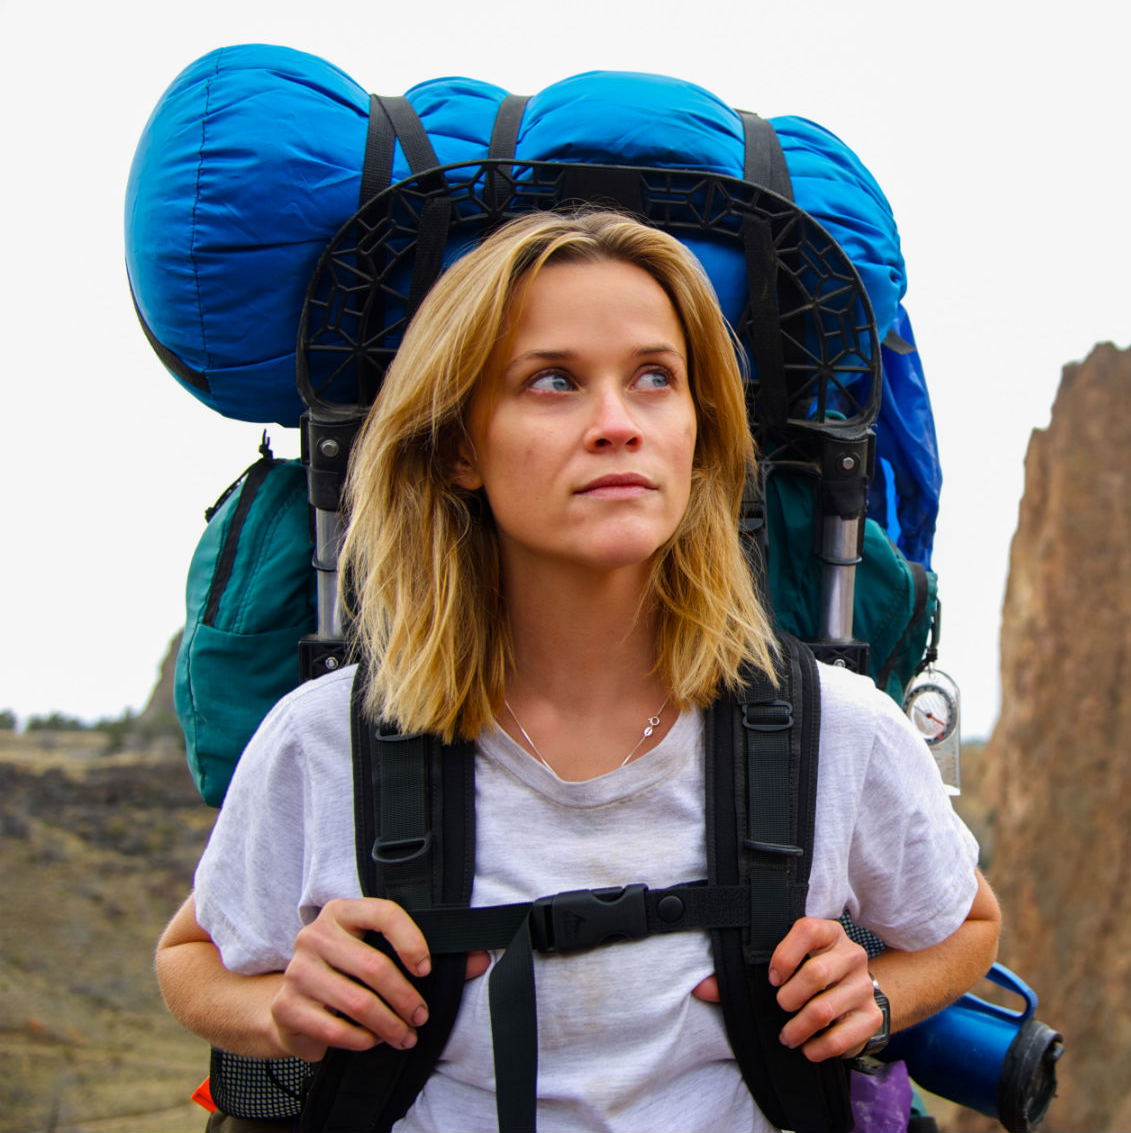 Reese Witherspoon in Wild